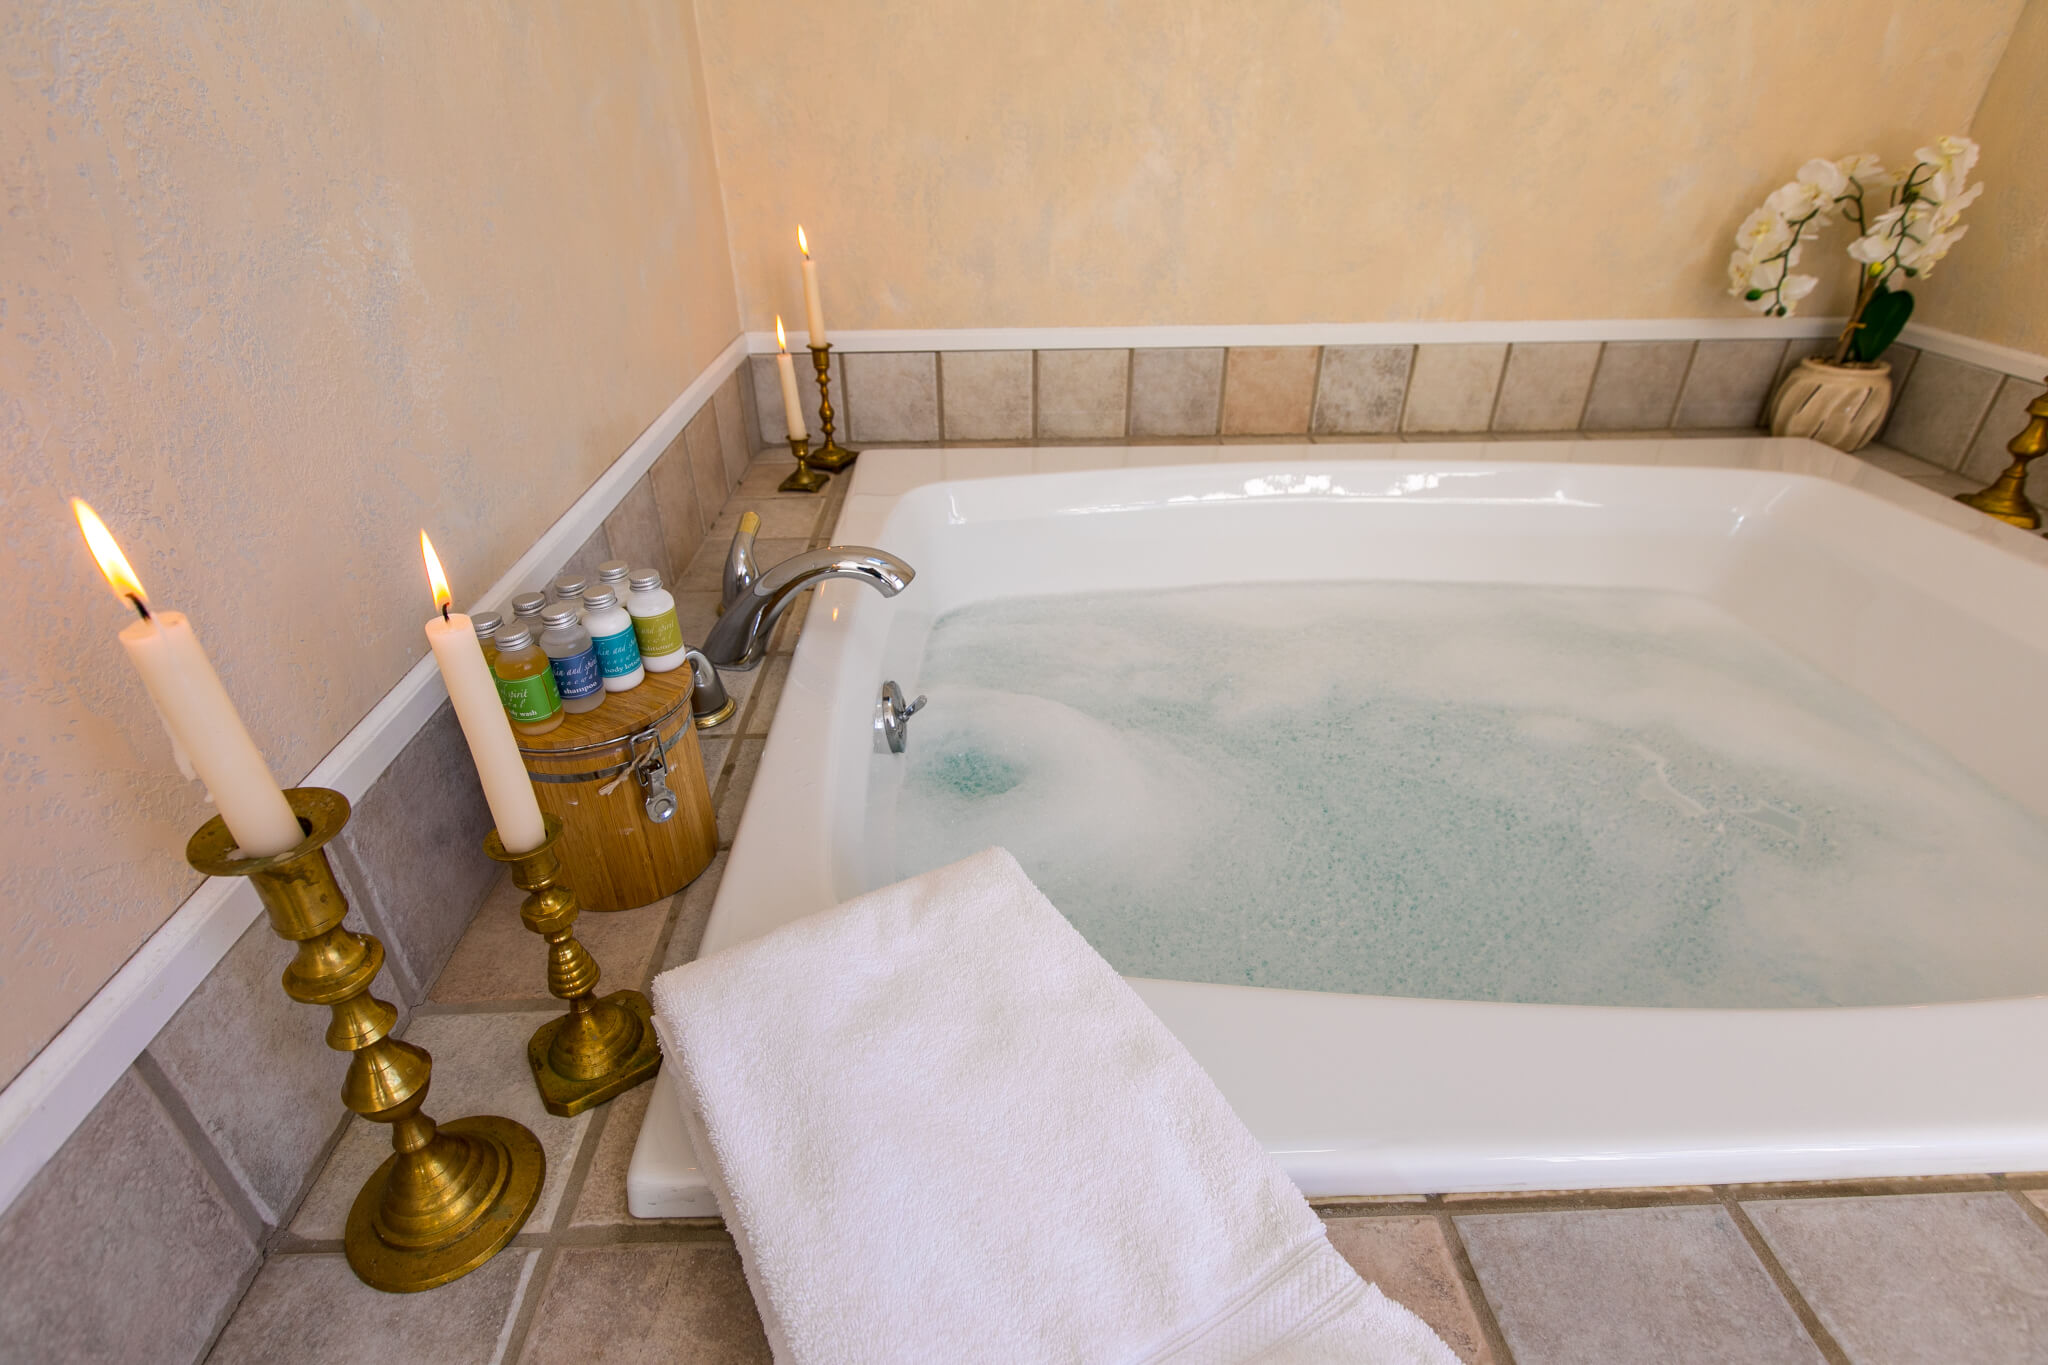 Bubble bath with lit candles and artisan soaps. Towel on the side of tiled tub.